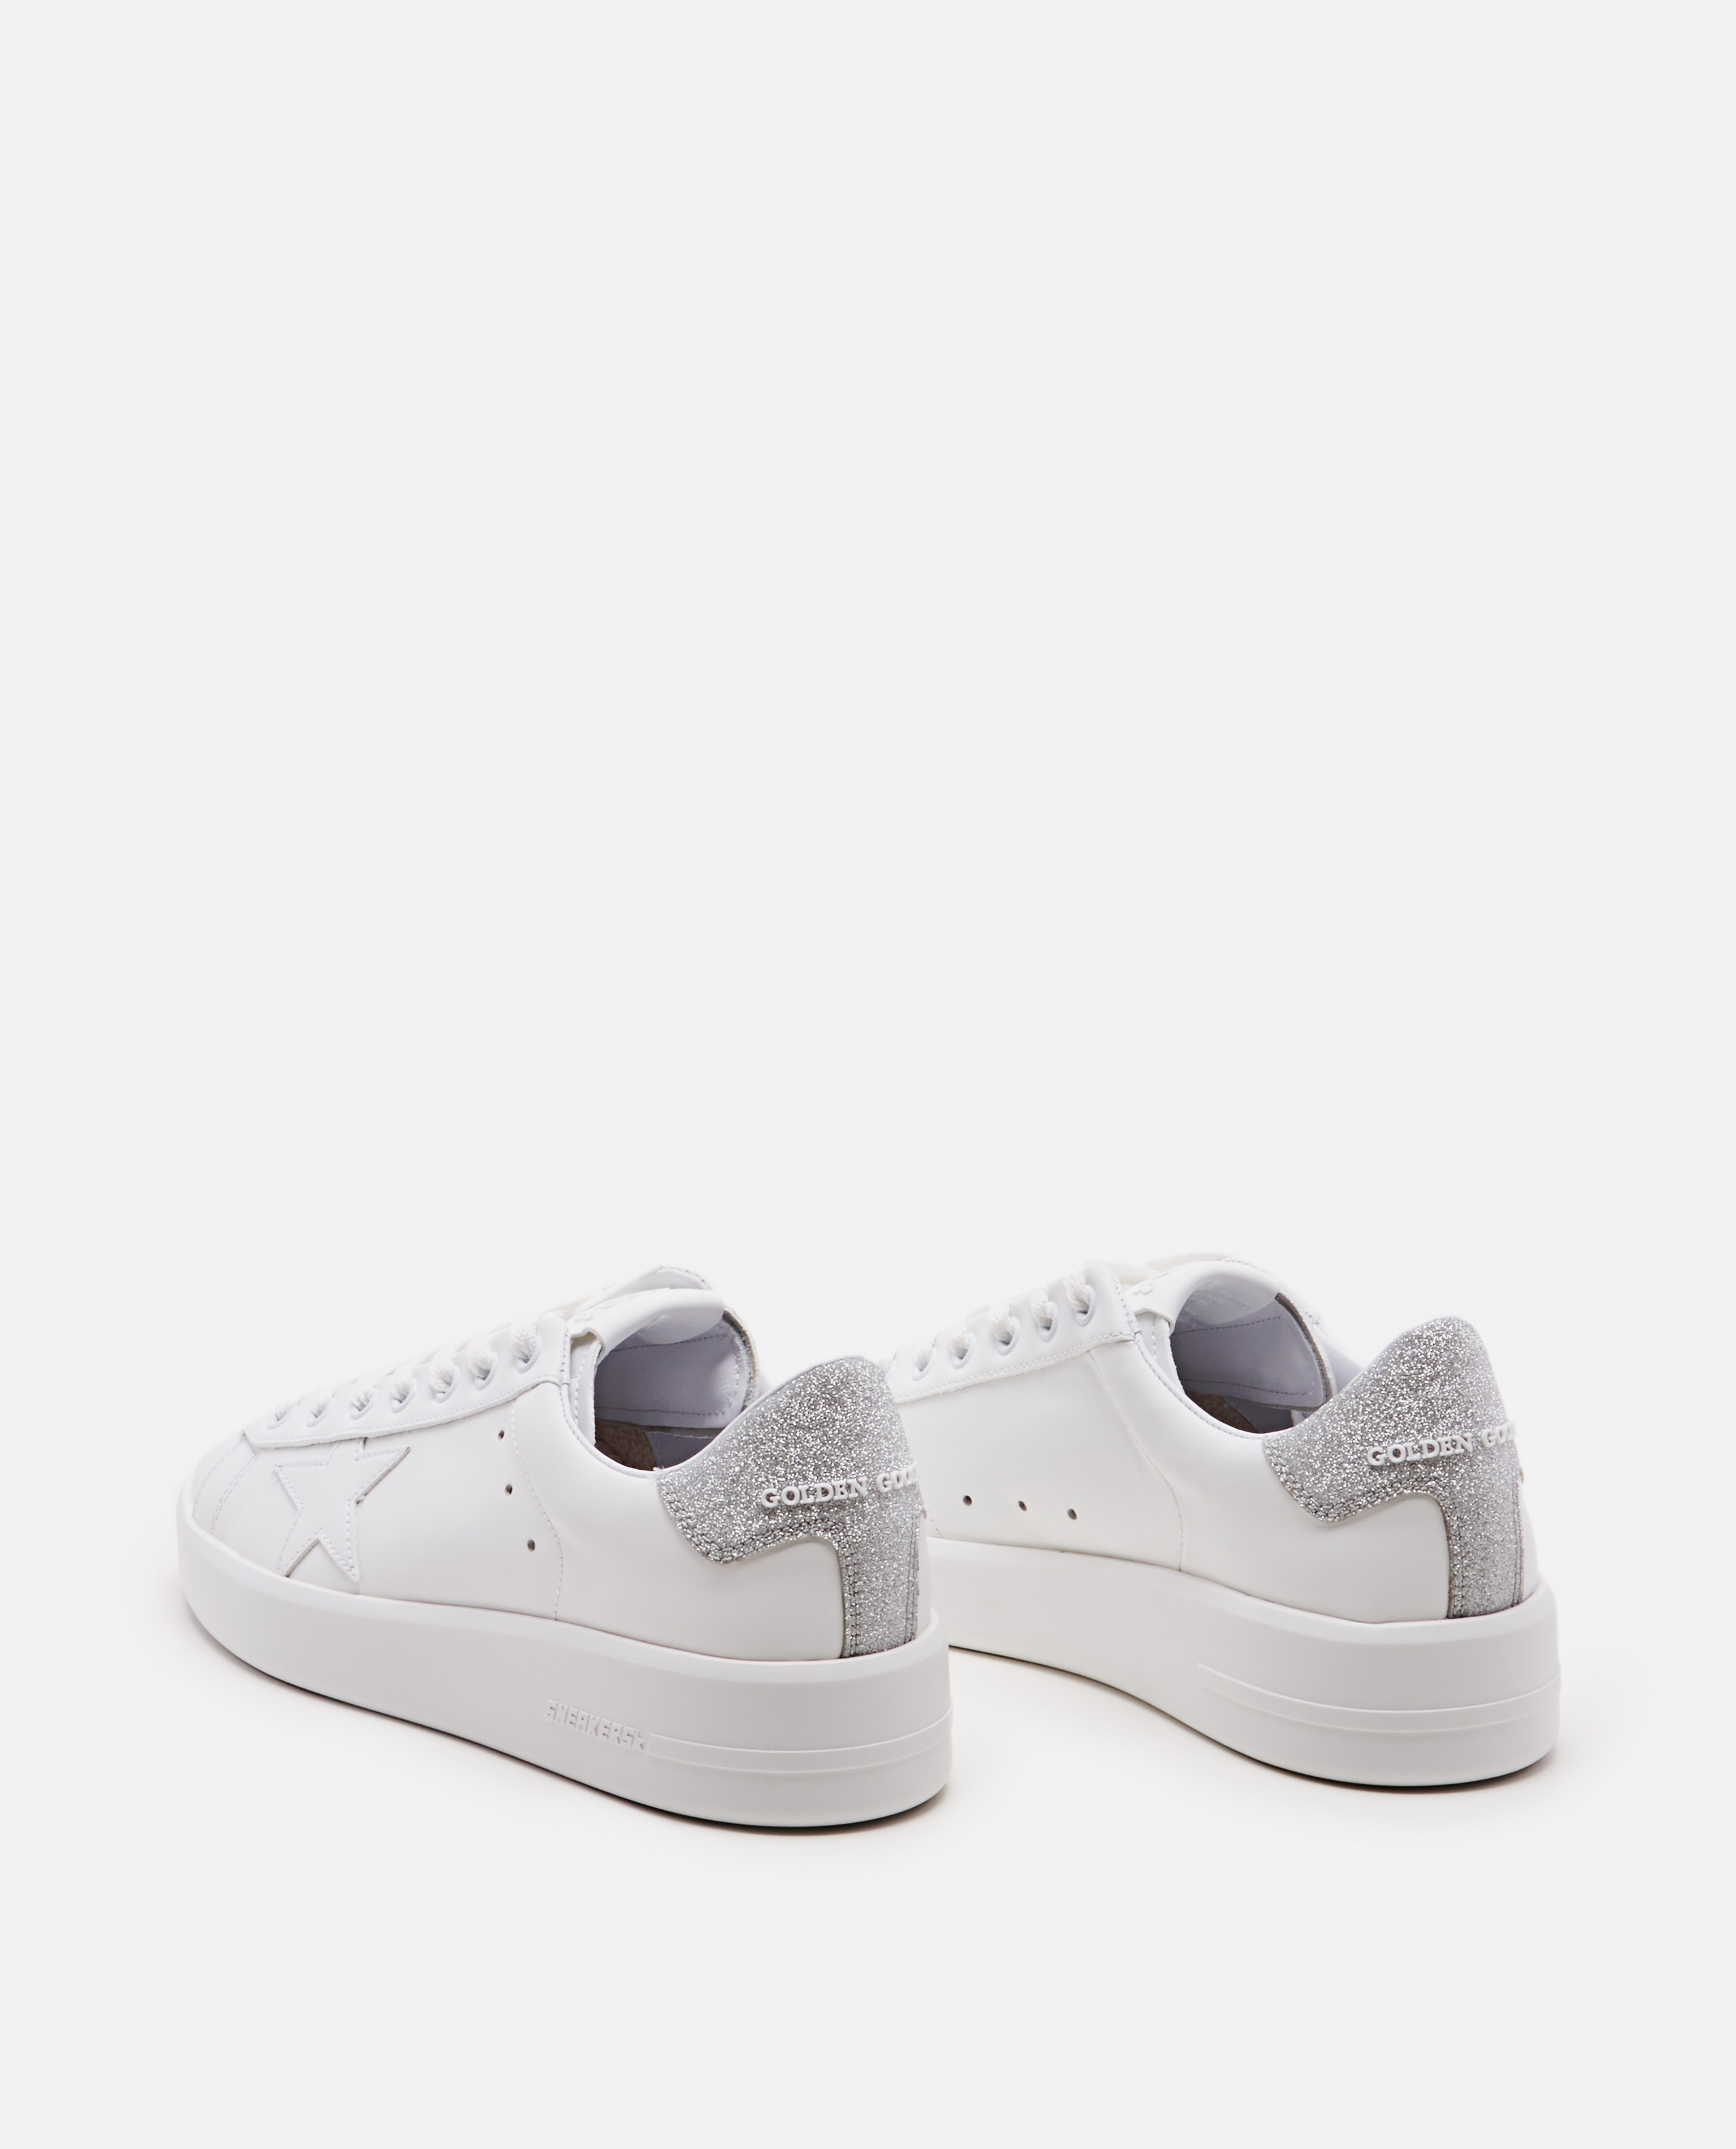 White leather sneakers  Women Golden Goose 000215590031979 3